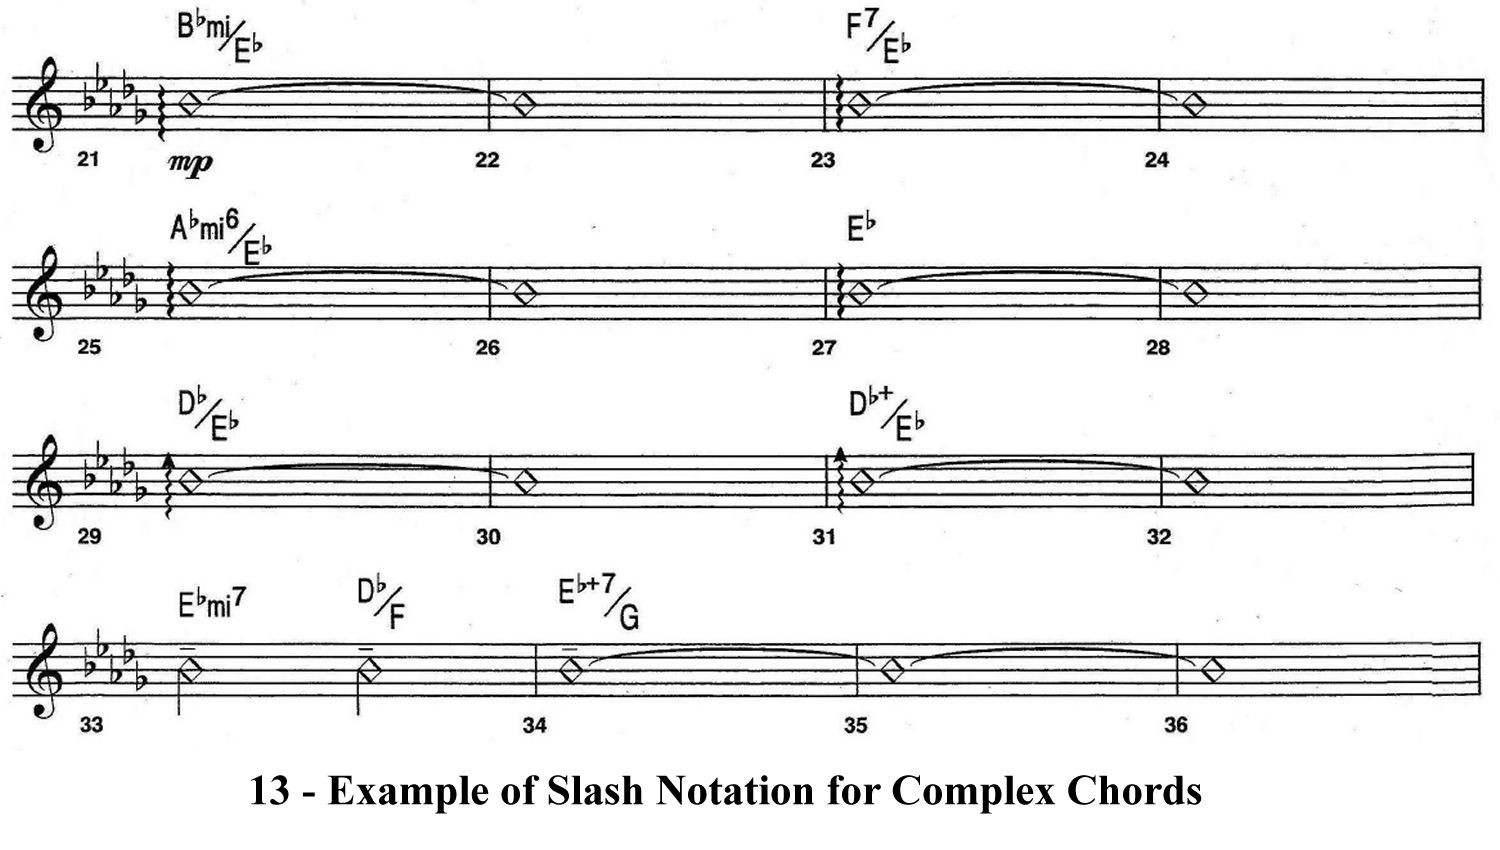 13-slash-notation-example